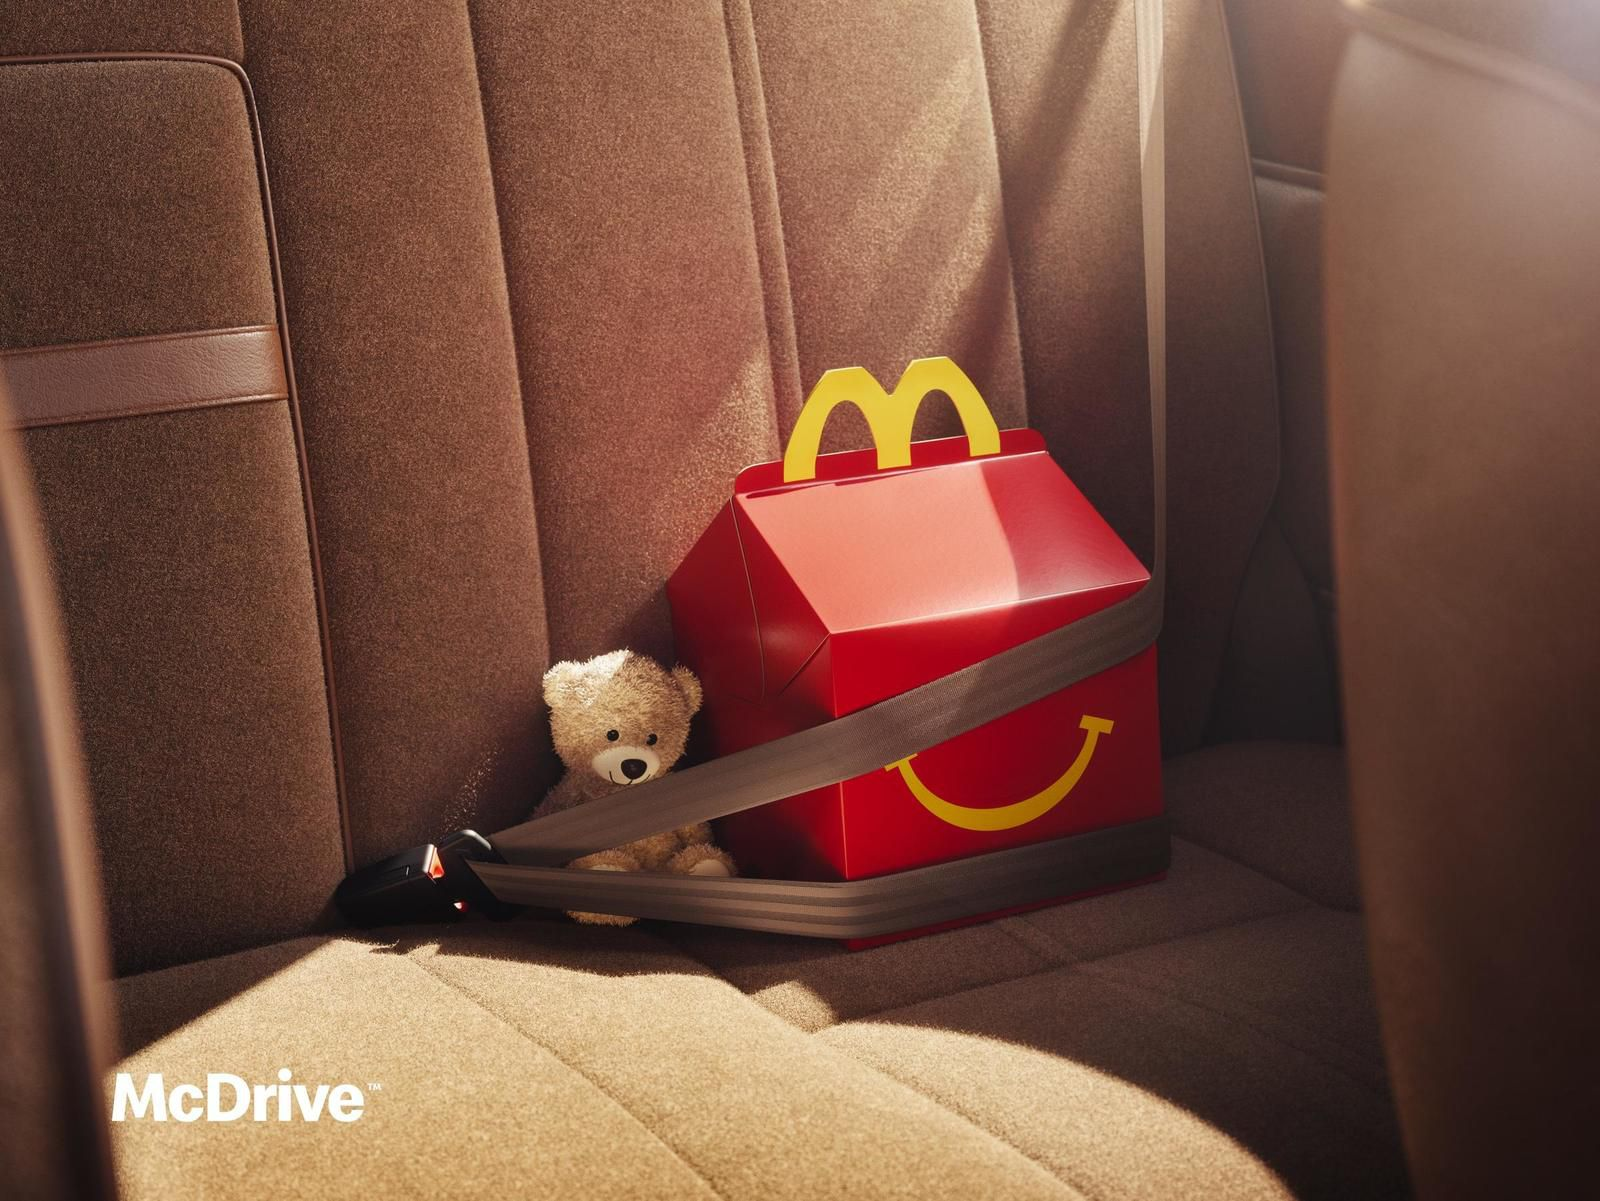 McDonald's France / McDrive I Agence : TBWA Paris, France (novembre 2020)